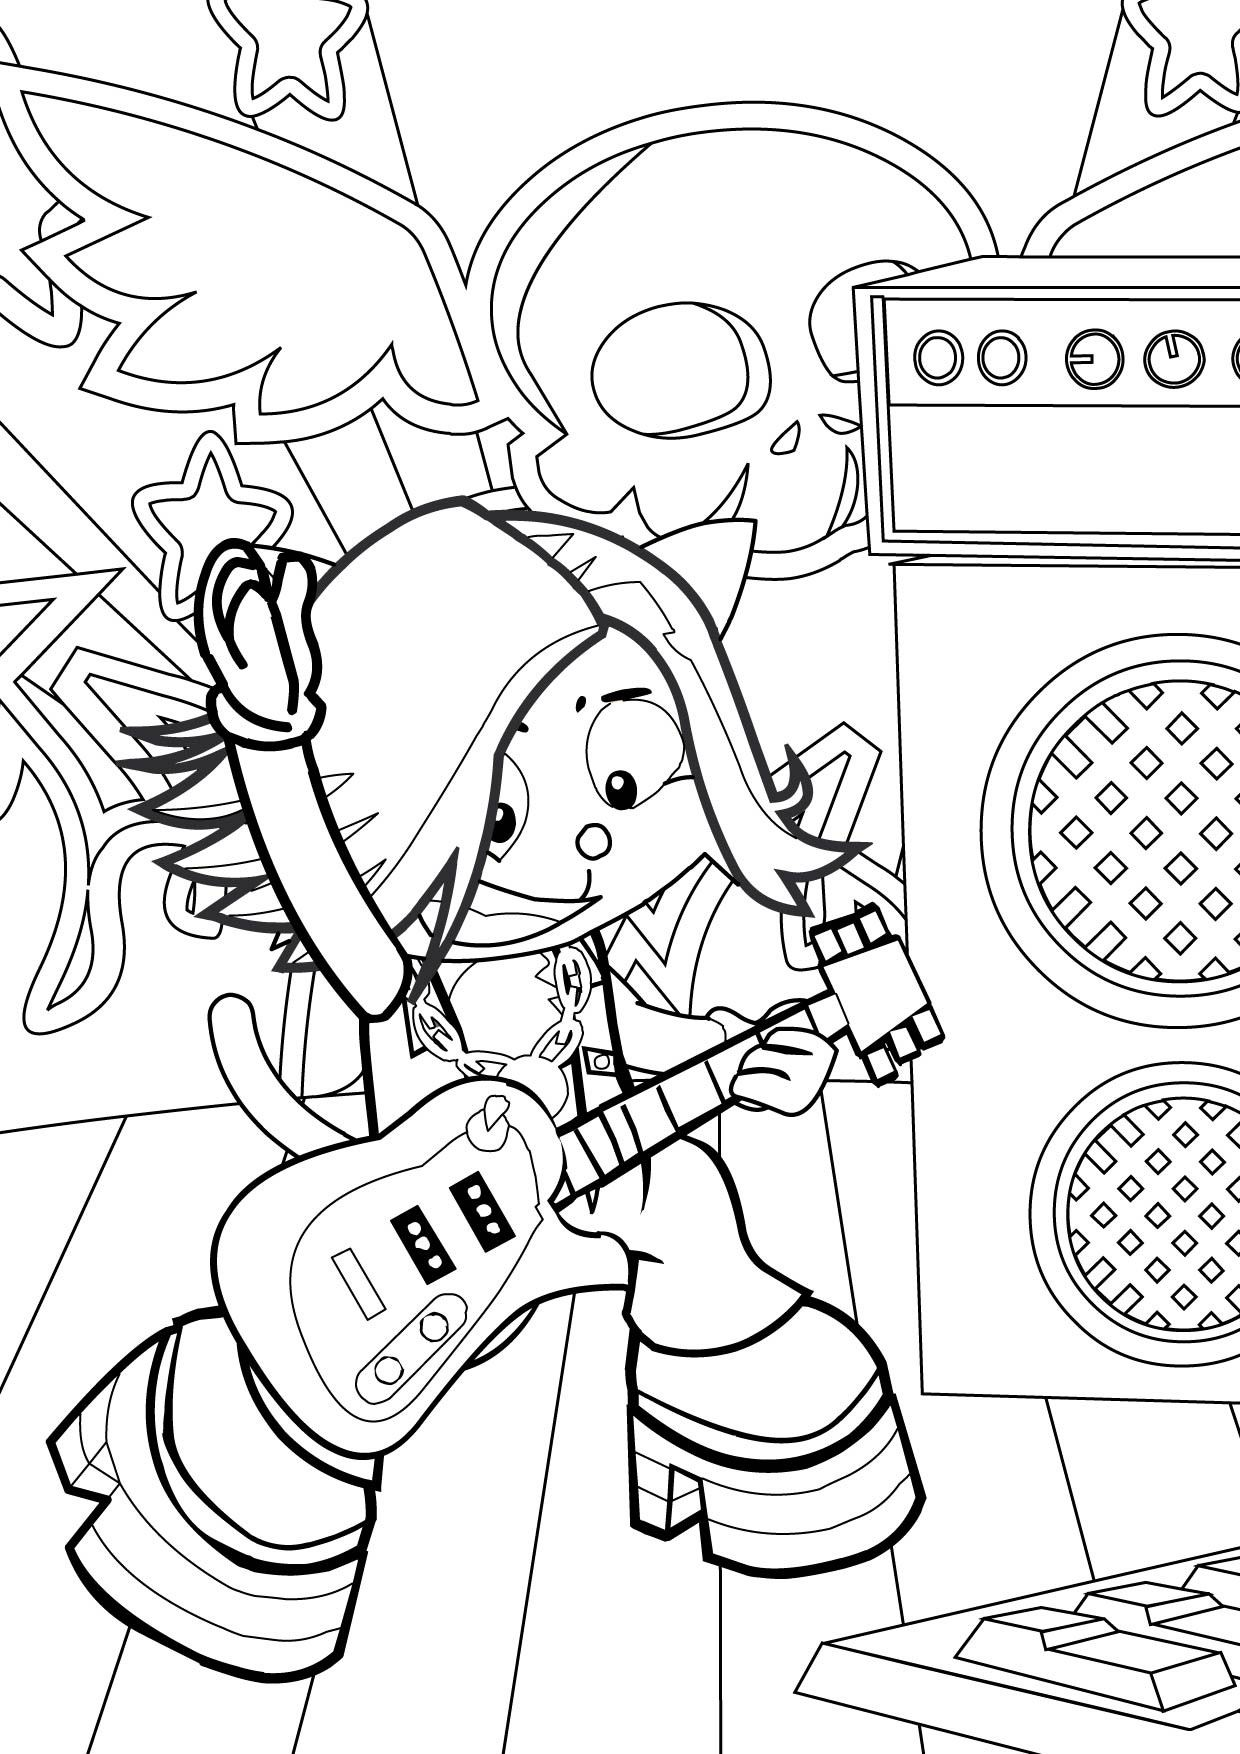 Rockstar Coloring Pages Printables Through The Thousand